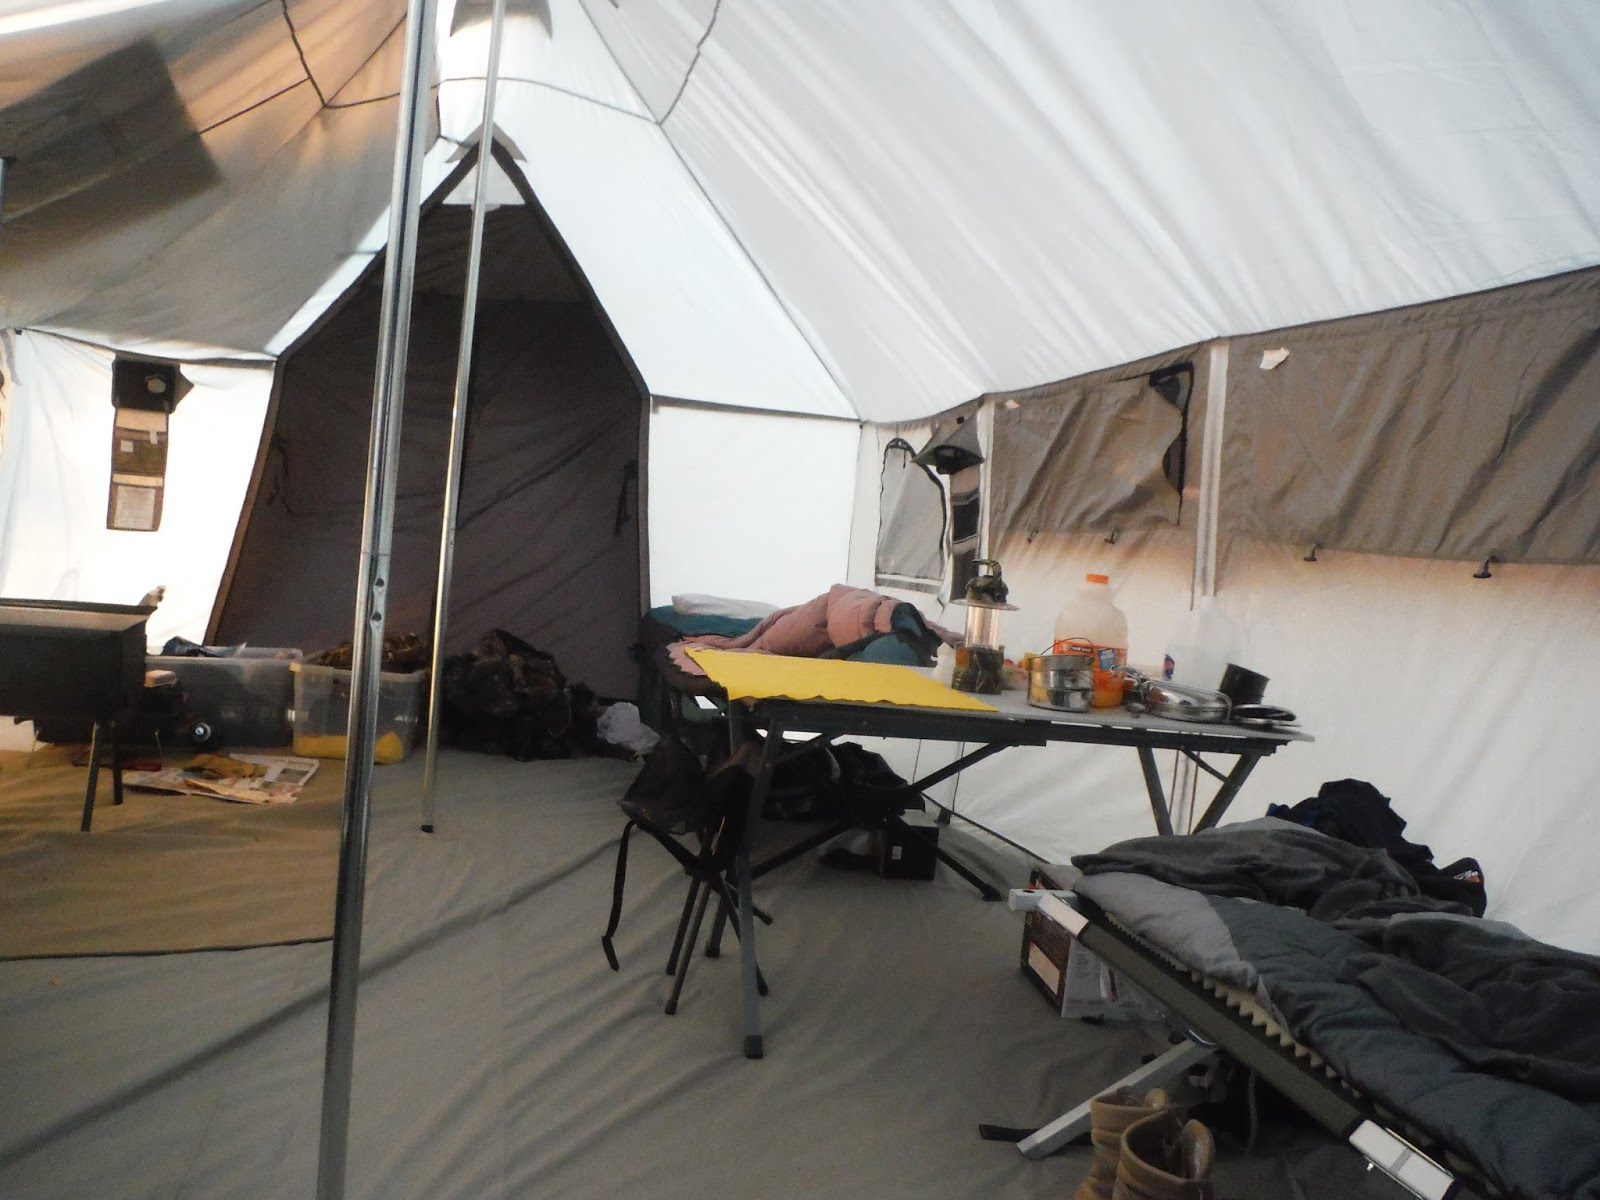 Inside the tent we used the propane heater to take the chill off and used the propane stove to boil water for the oatmeal. The next evening we did start the ... & Fly Fishing the West with Howard: Camping in an Alaknak Tent